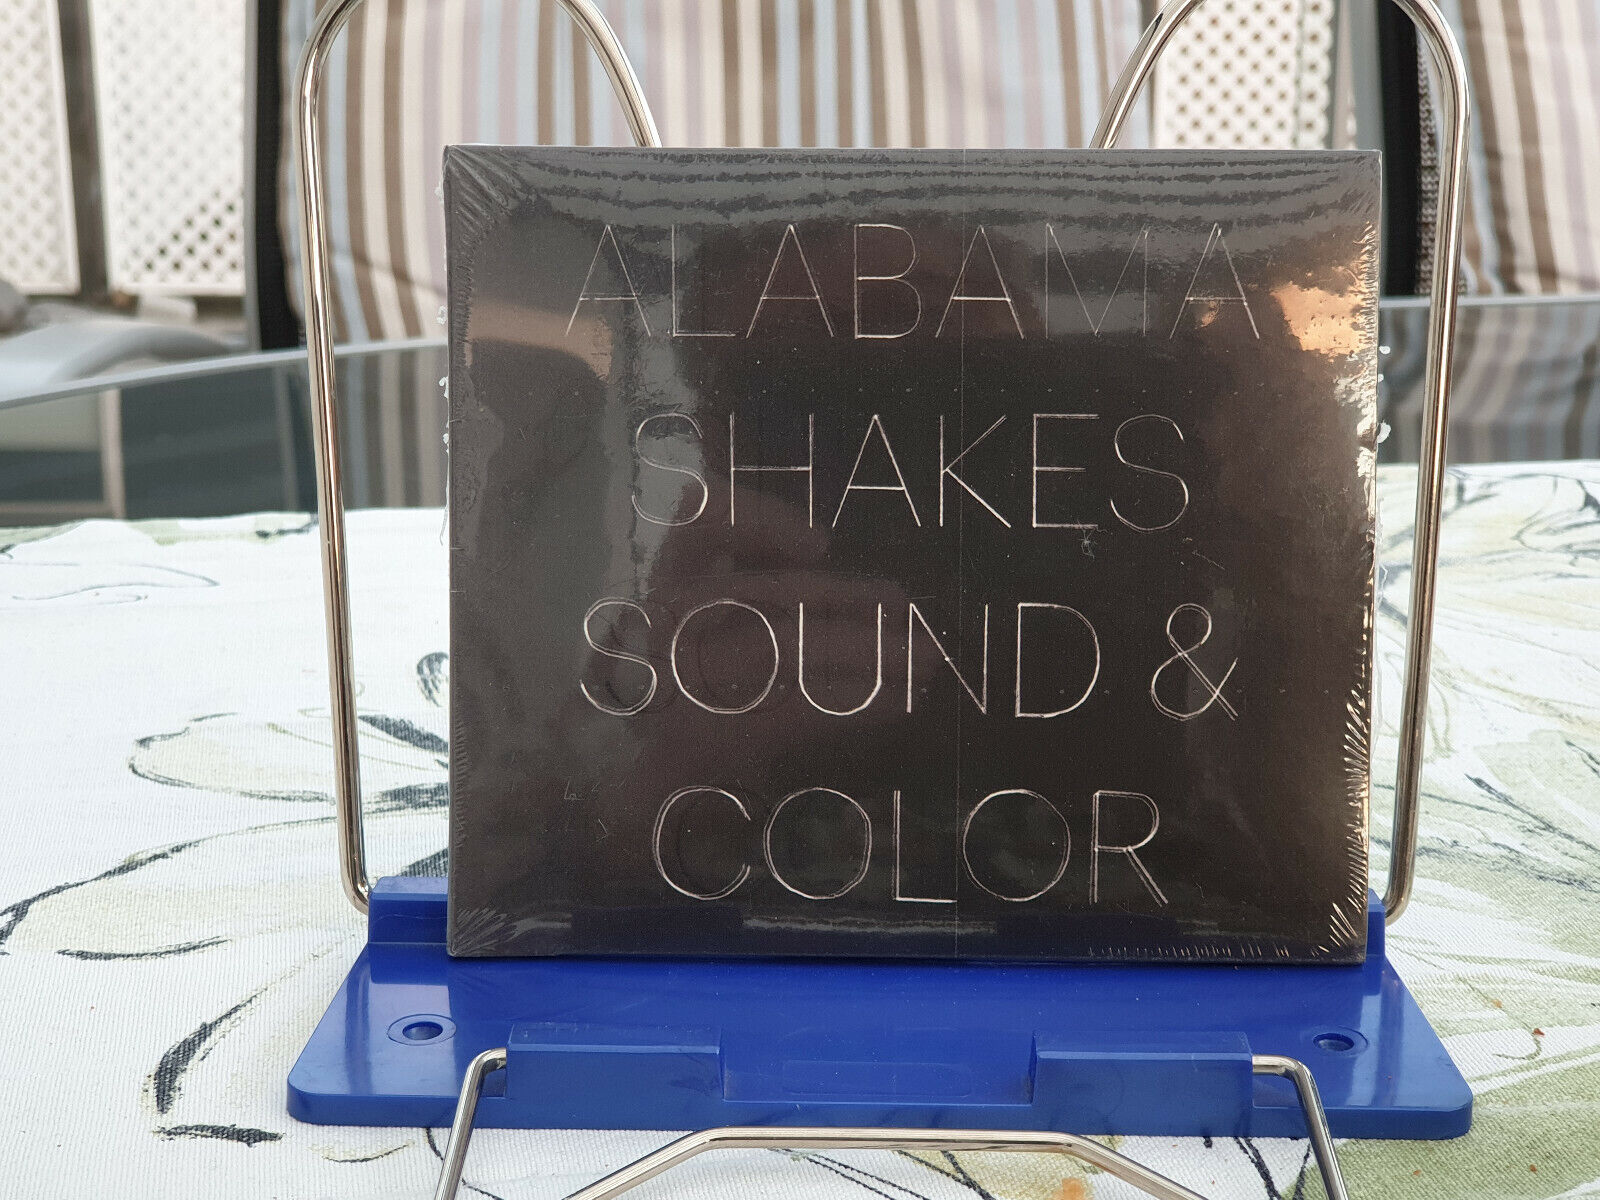 CD Dig.- Alabama Shakes - Sound & Color - Rouch Trade RTRADCD750 - Europe 2015